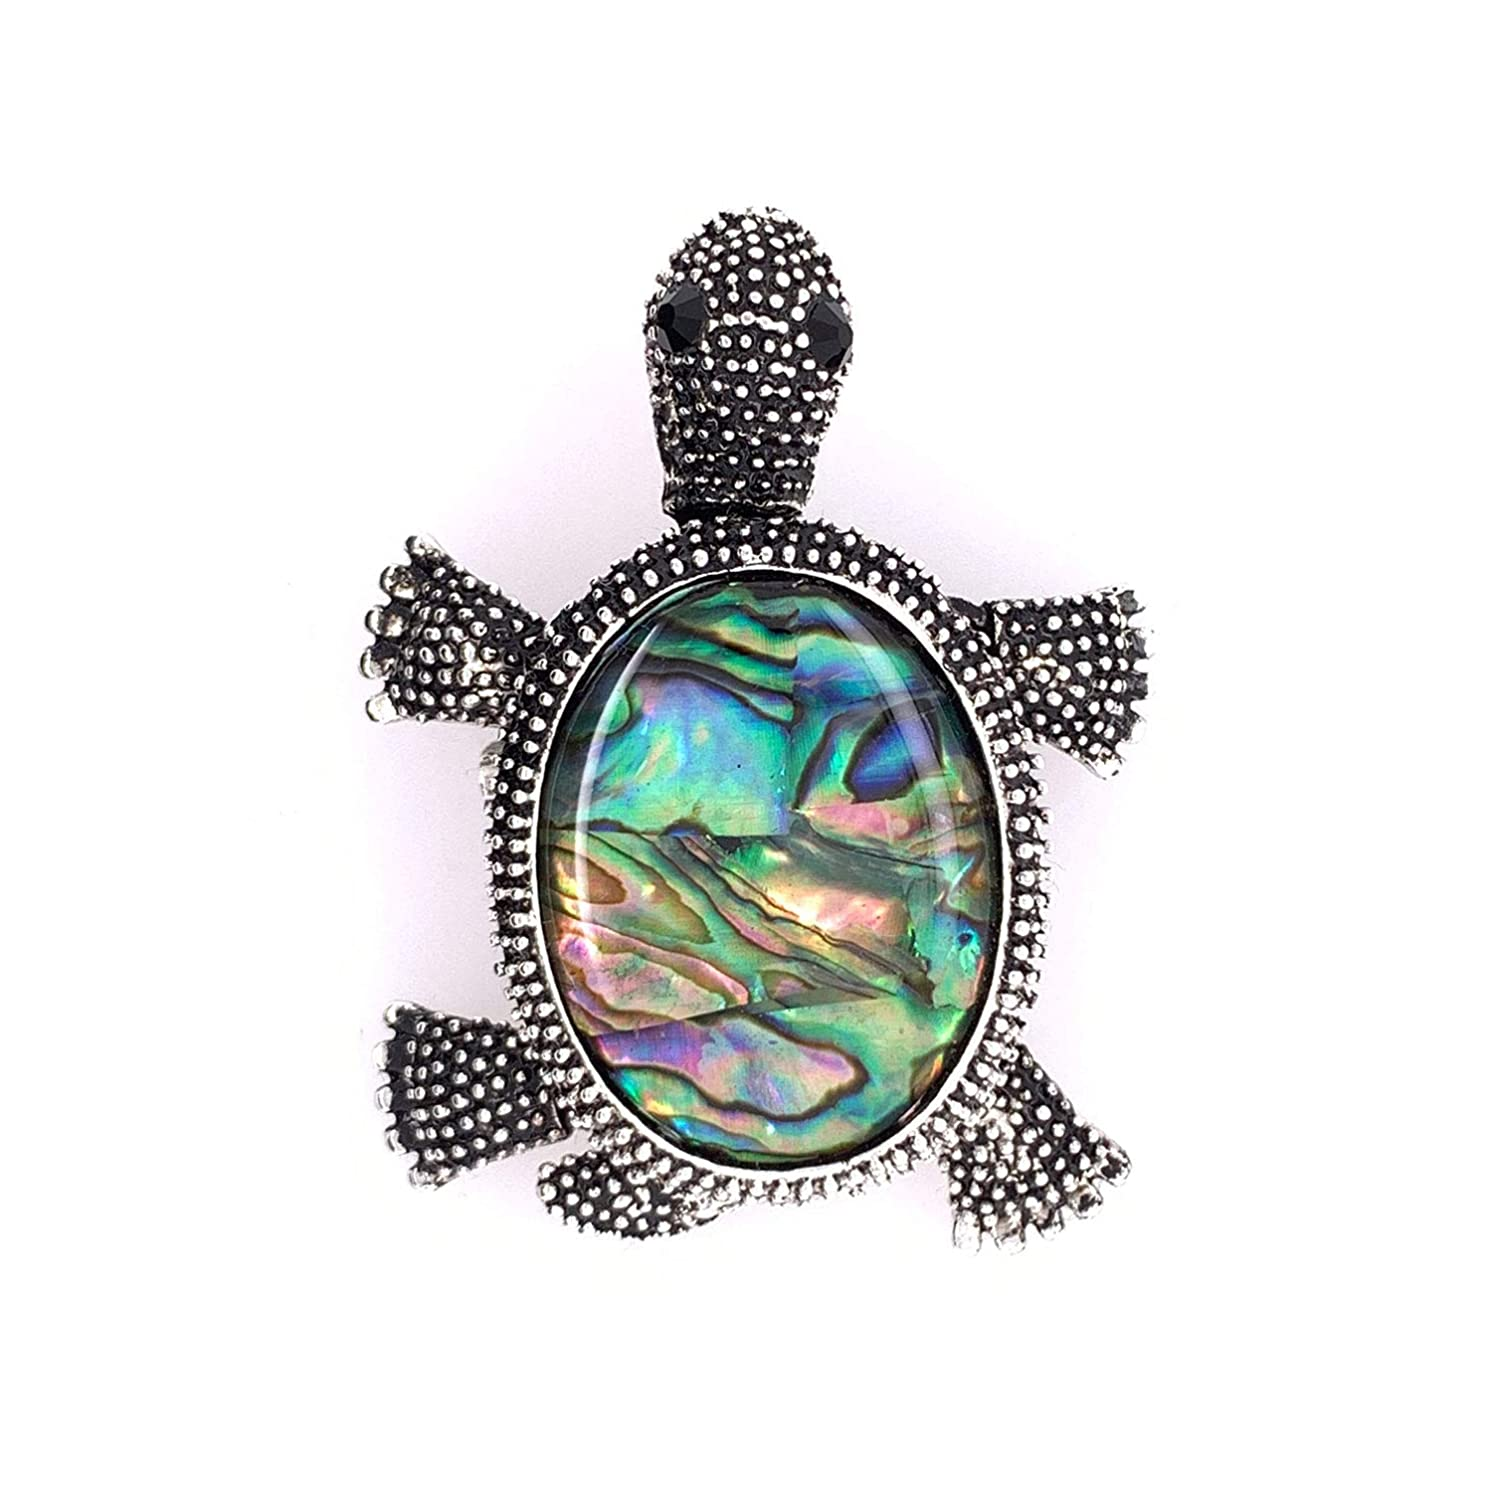 Jewelry Made By Me Coastal Sea Turtle Pendant Brooch Pin, Antique Silver